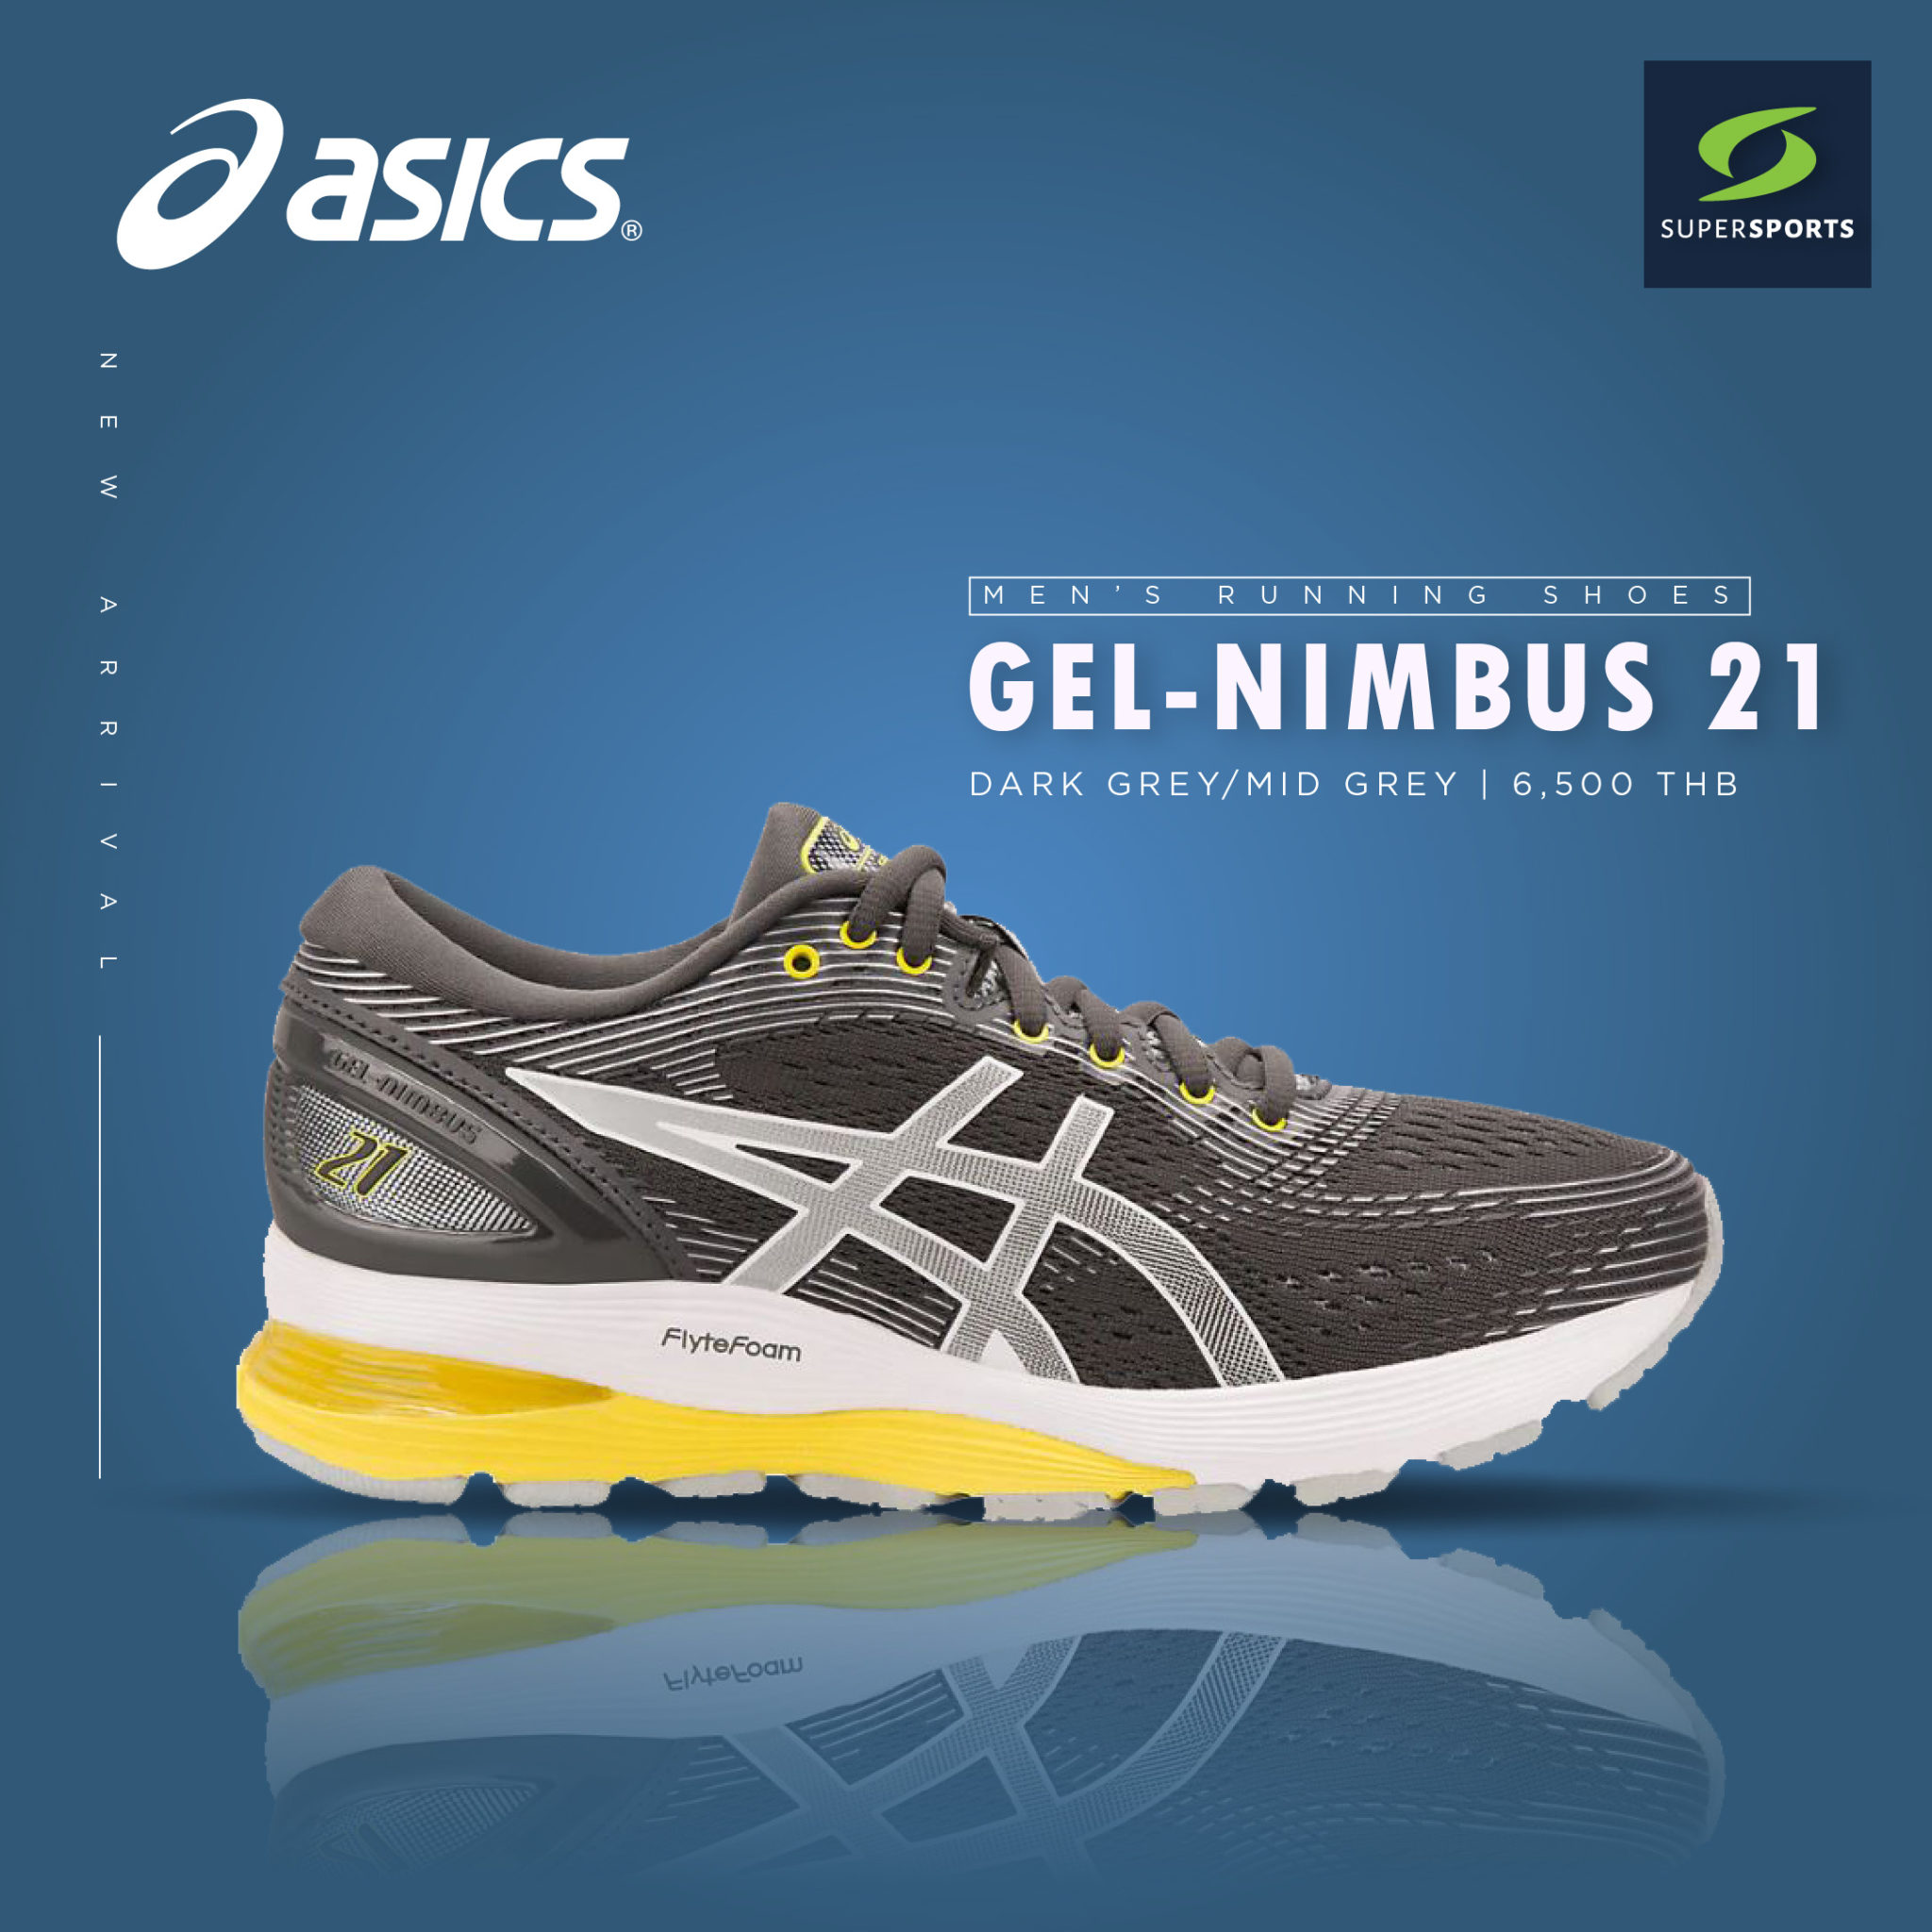 ASICS GEL-NIMBUS 21 at SUPERSPORTS